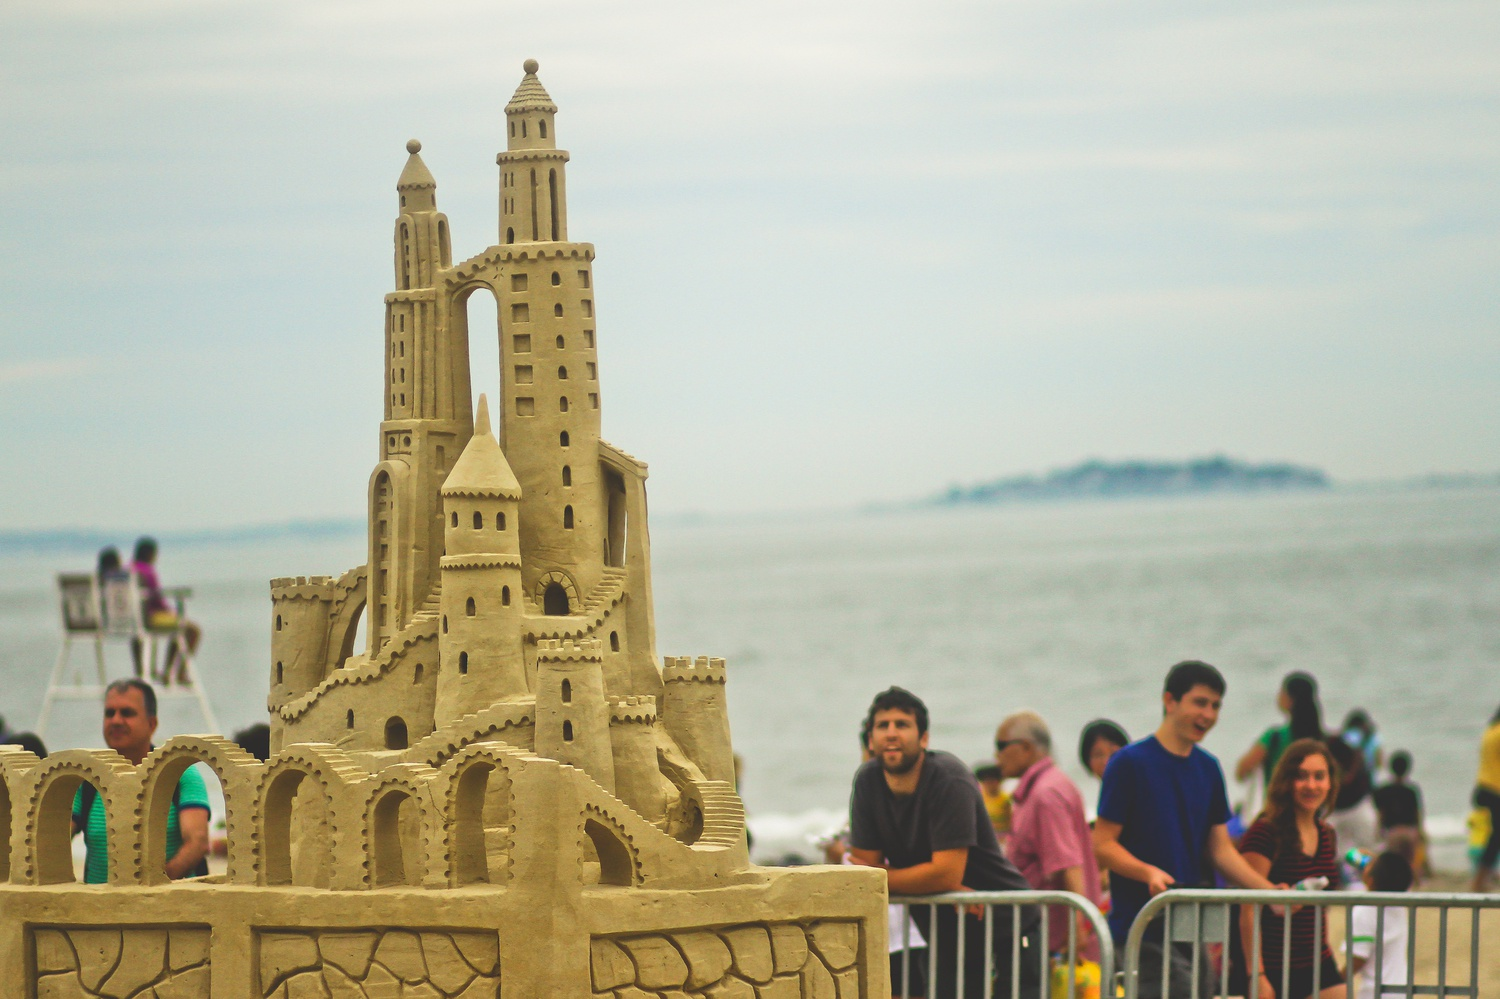 A sand castle stands at the annual Revere Beach National Sand Sculpting Festival, which lasted from July 18th to July 20th. The Festival attracted a wide variety of locals and tourists throughout the weekend.